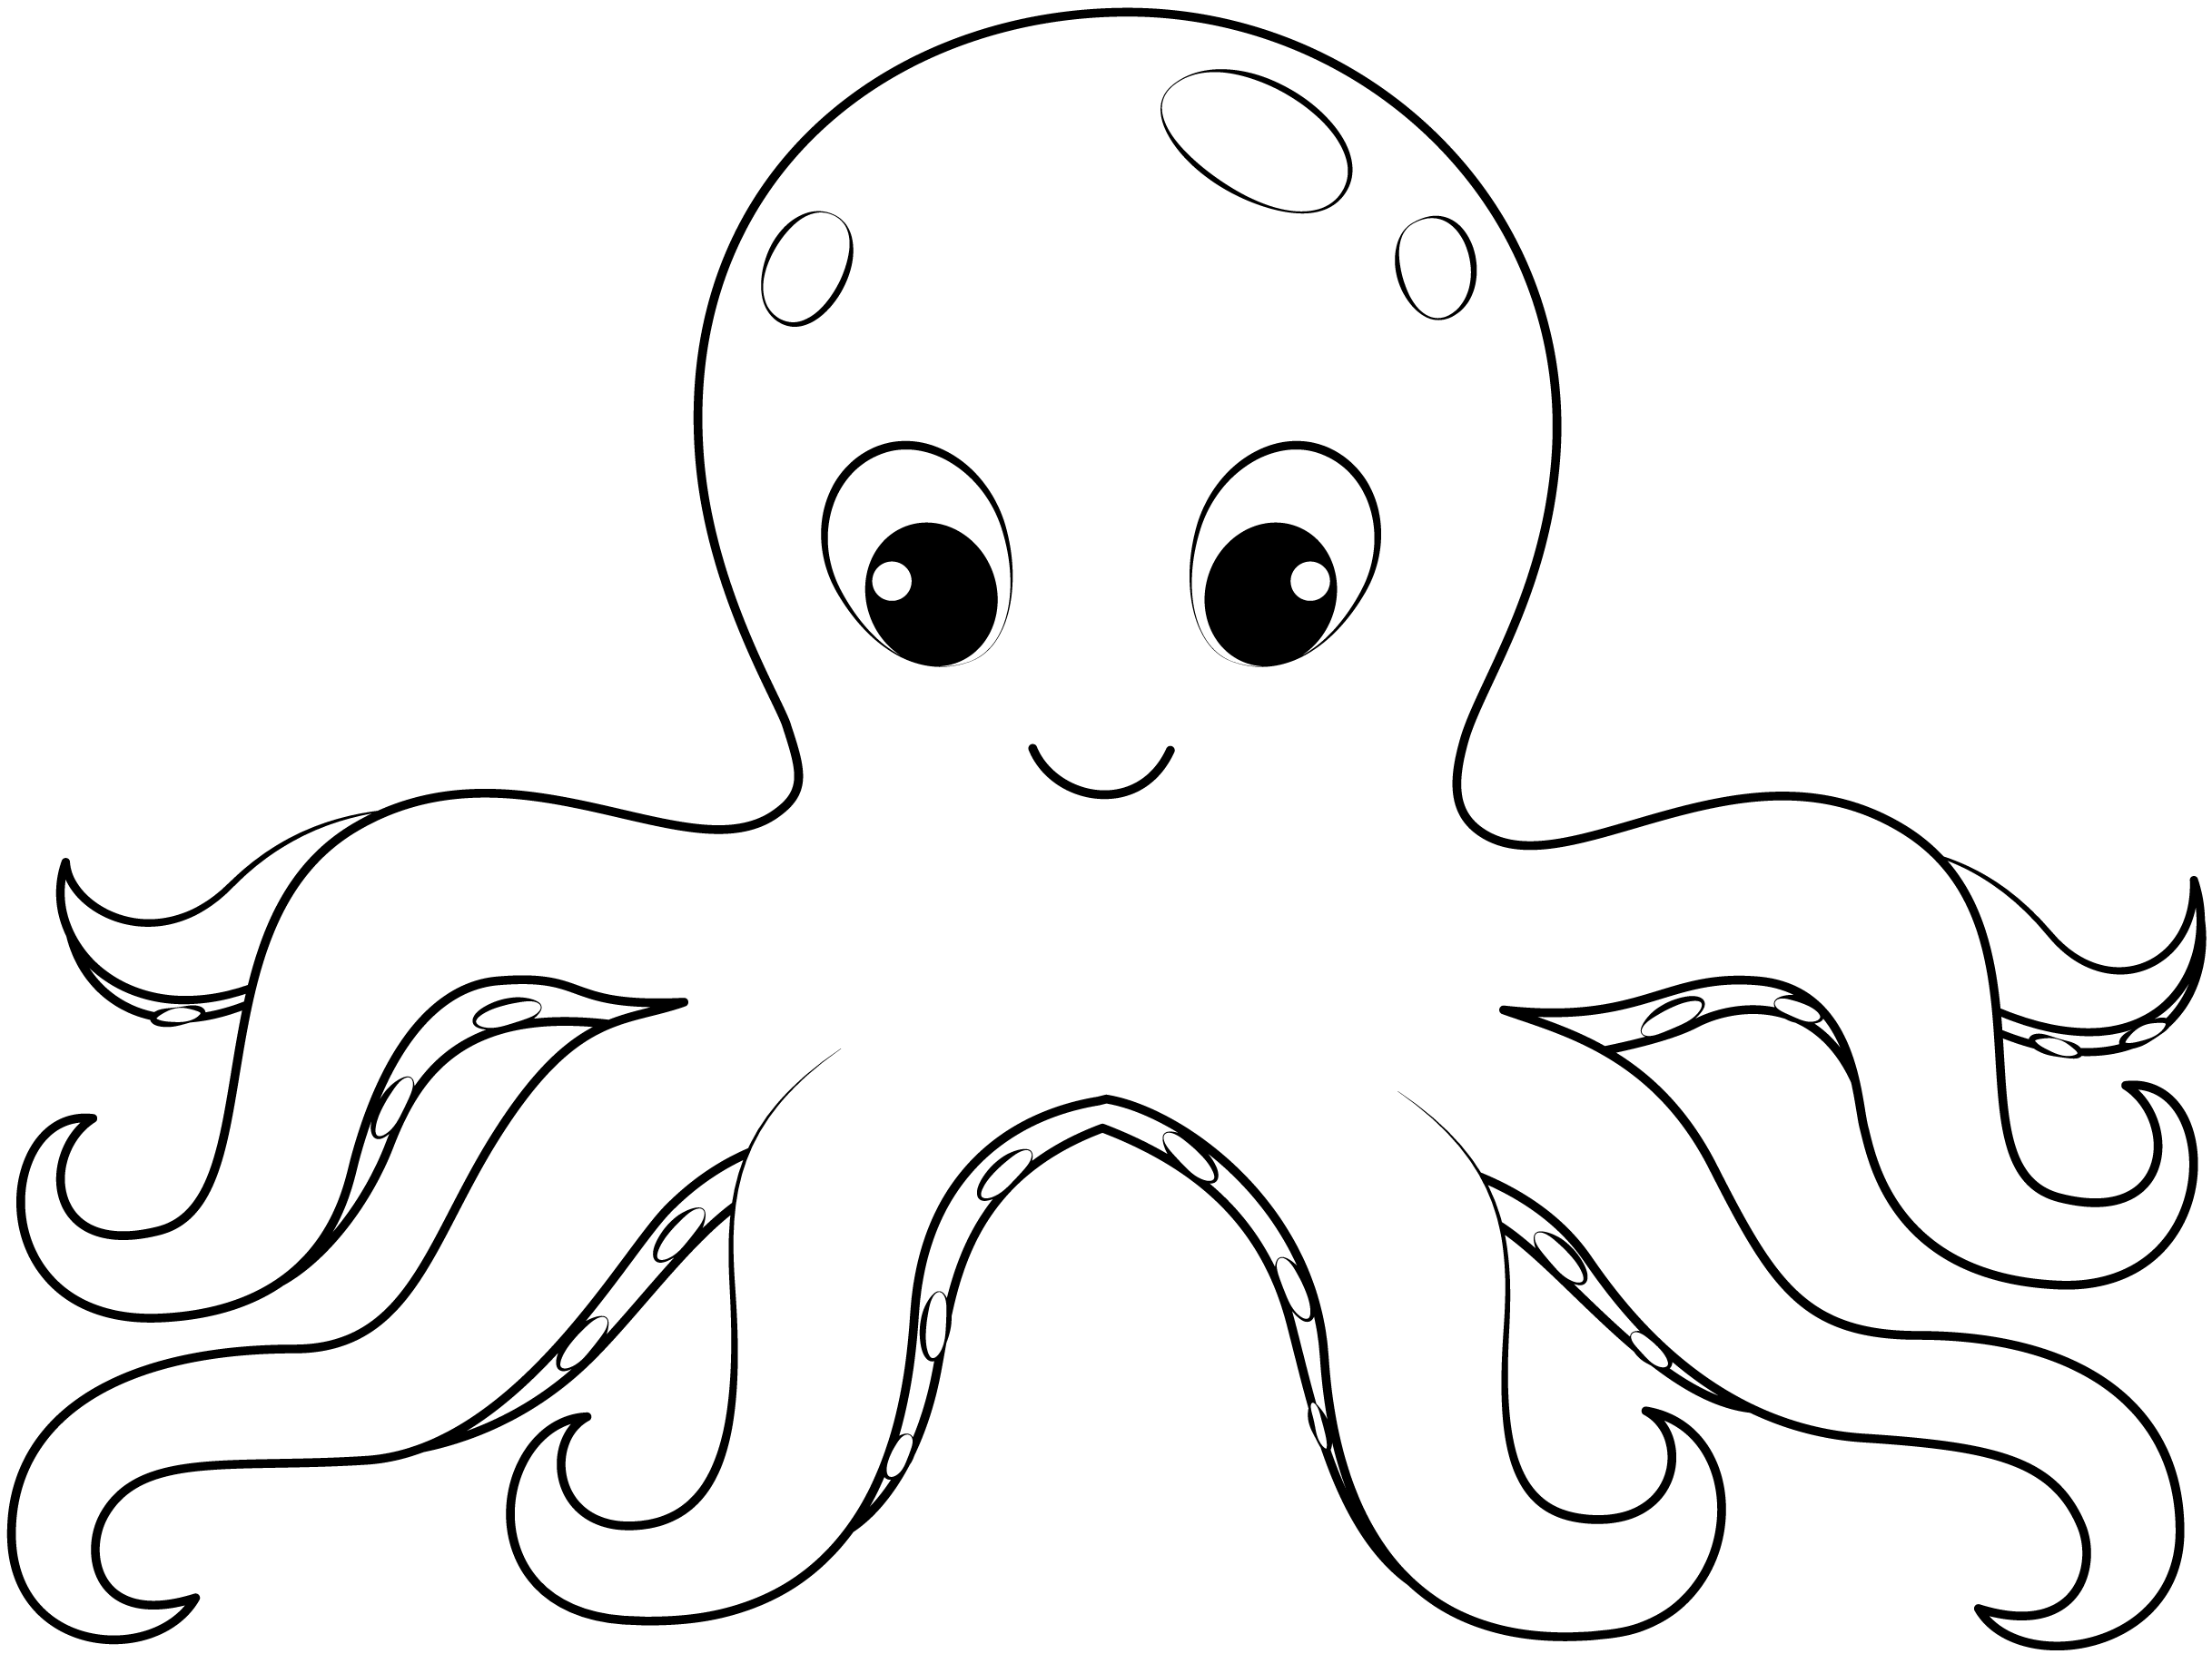 octopus coloring picture octopus coloring pages kiddo octopus coloring picture